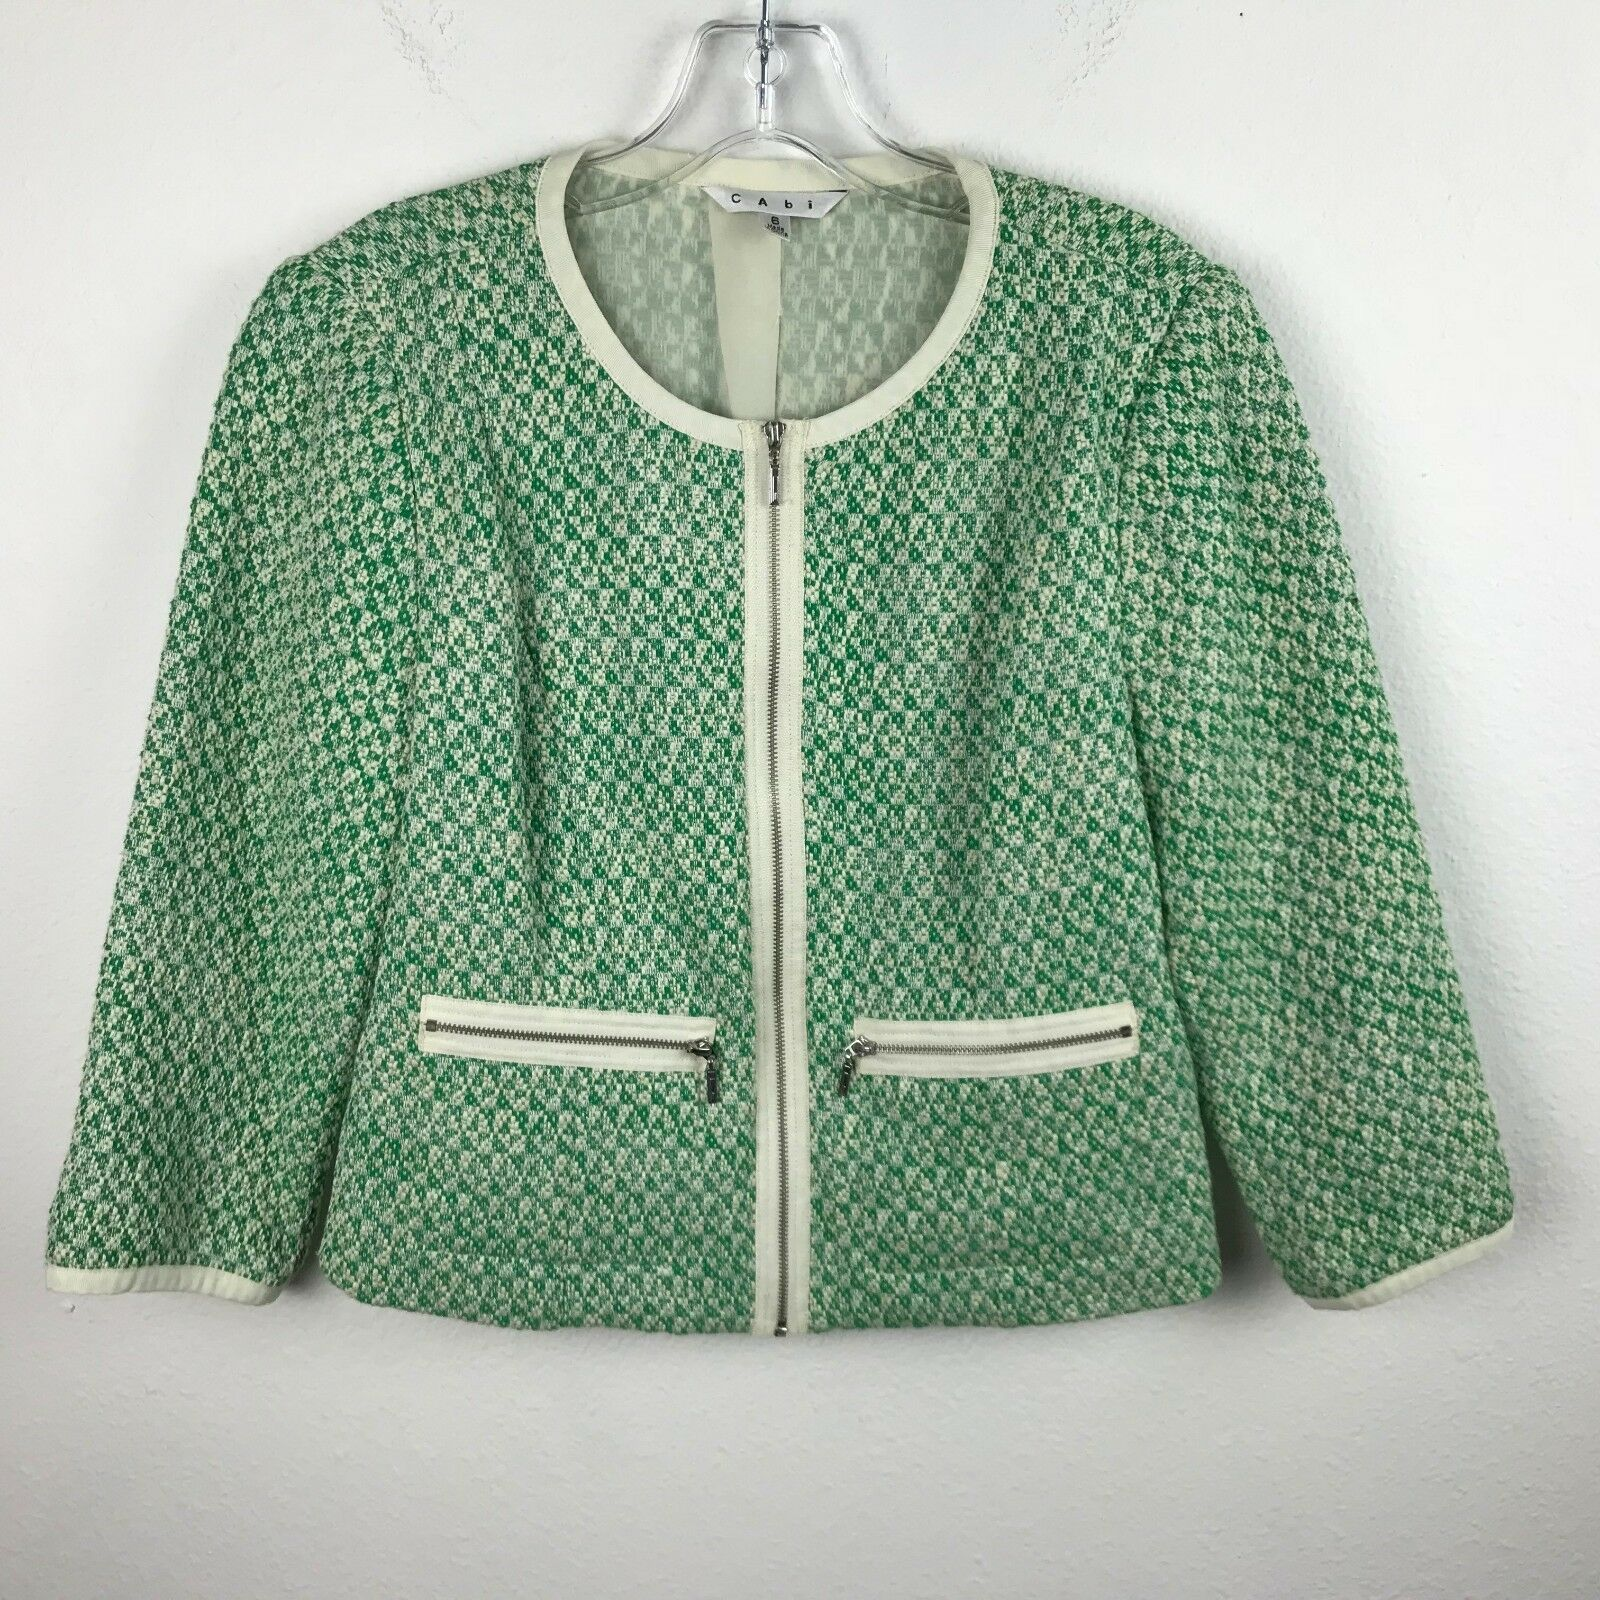 Cabi Blazer Size 6 Green Ivory Woven Style vtg 60's style Mod Career Cotton